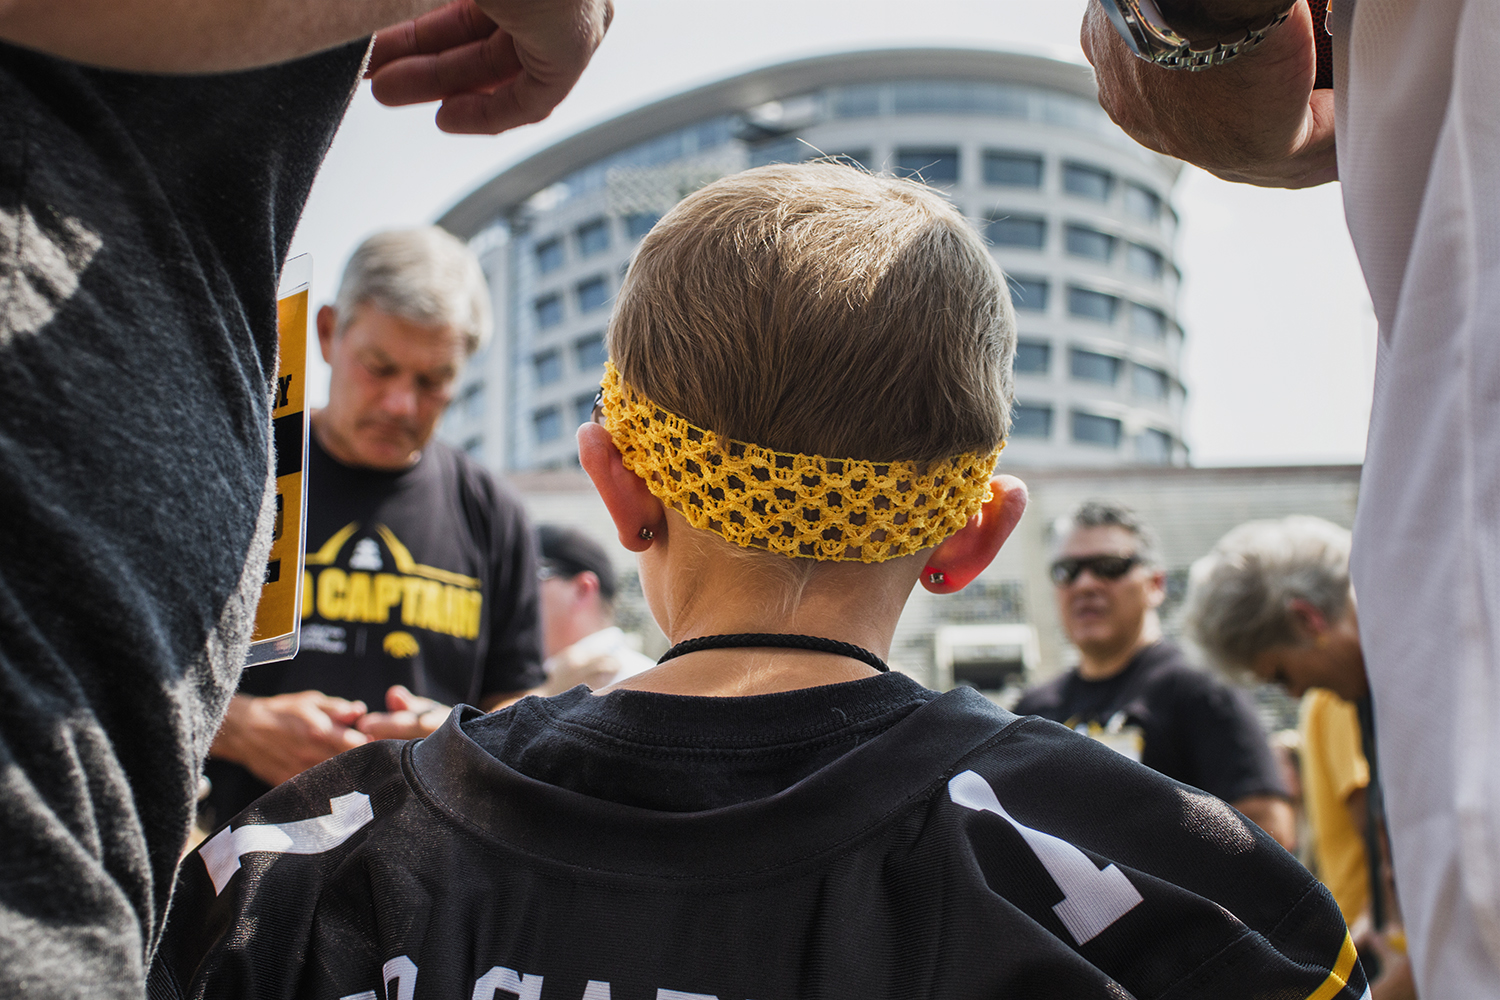 Kid Captain Harper Stribe waits to meet Iowa head coach Kirk Ferentz during Iowa Football Kid's Day at Kinnick Stadium on Saturday, August 11, 2018. The 2018 Kid Captains met the Iowa football team and participated in a behind-the-scenes tour of Kinnick Stadium. Each child's story will be featured throughout the 2018 Iowa football season.